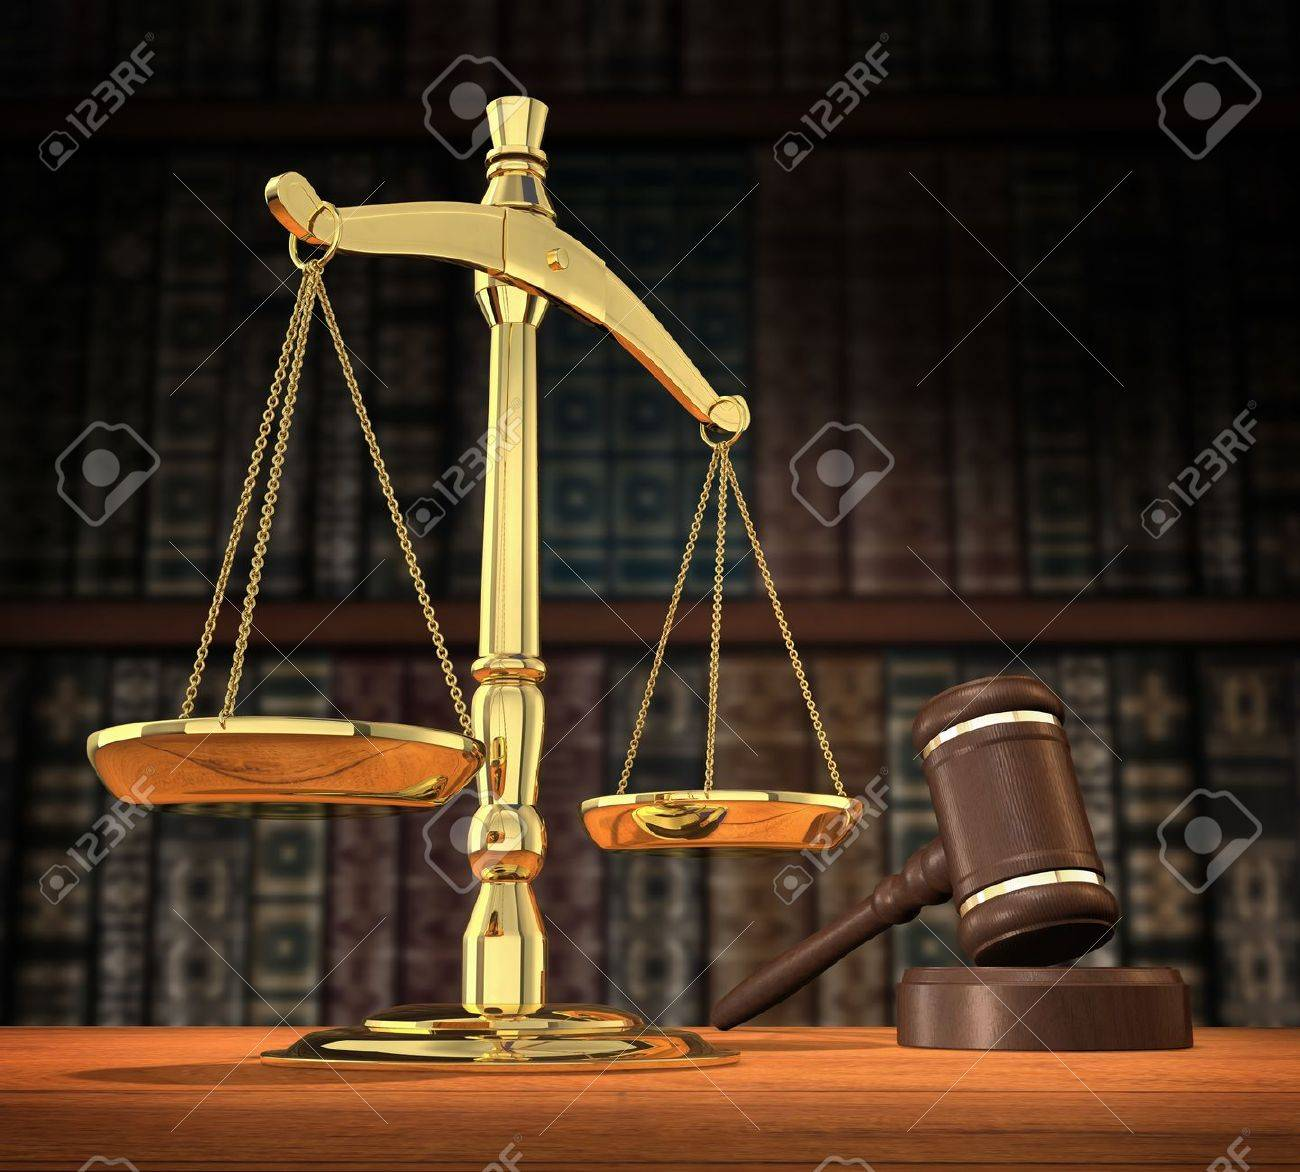 Scales of justice and gavel on desk with dark background that allows for copyspace. Stock Photo - 7054371